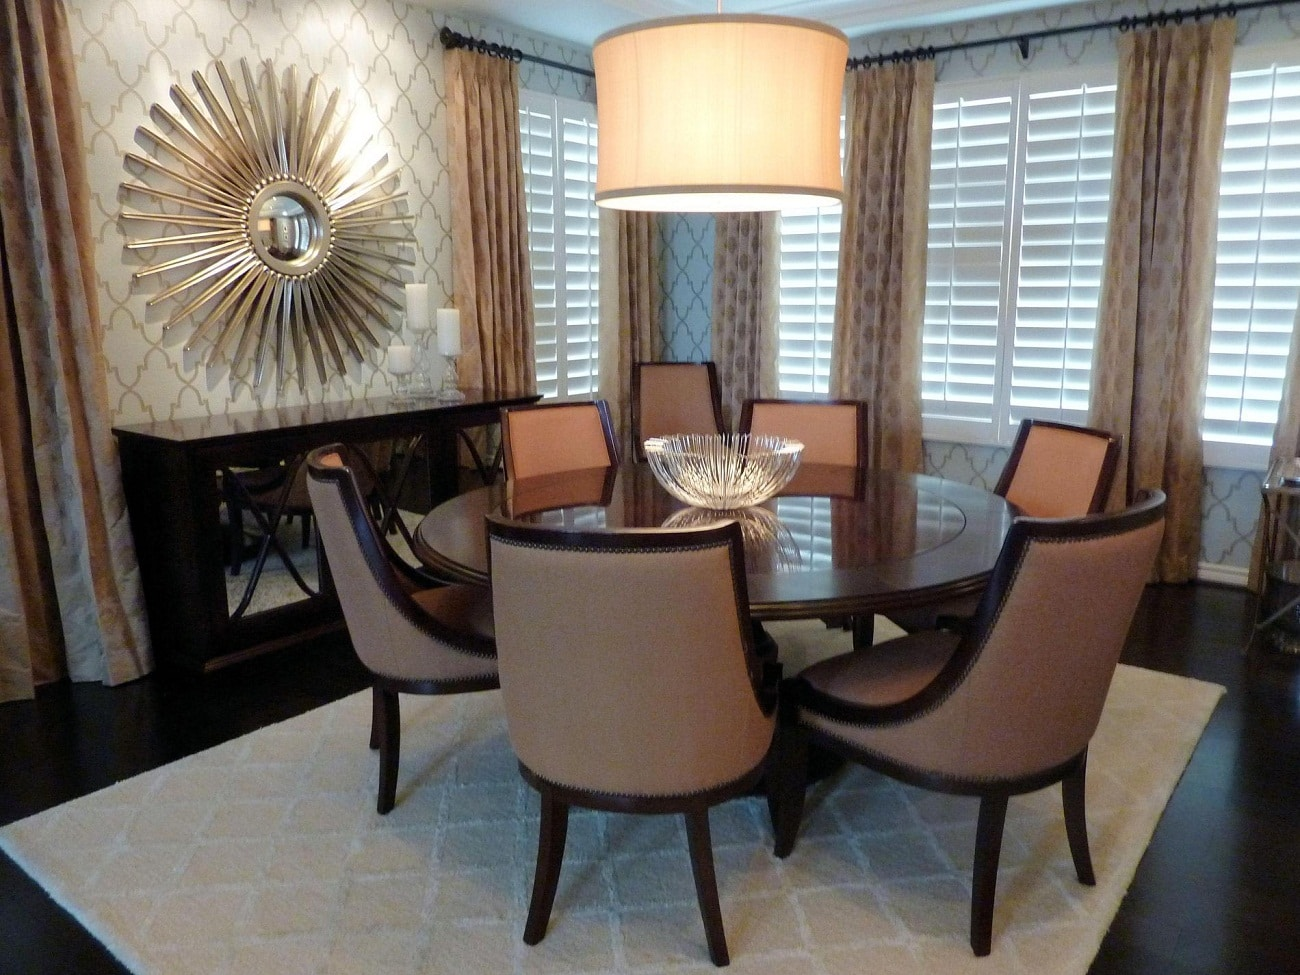 Home decor dining room ideas living room decor ideas Living and dining room decorating ideas